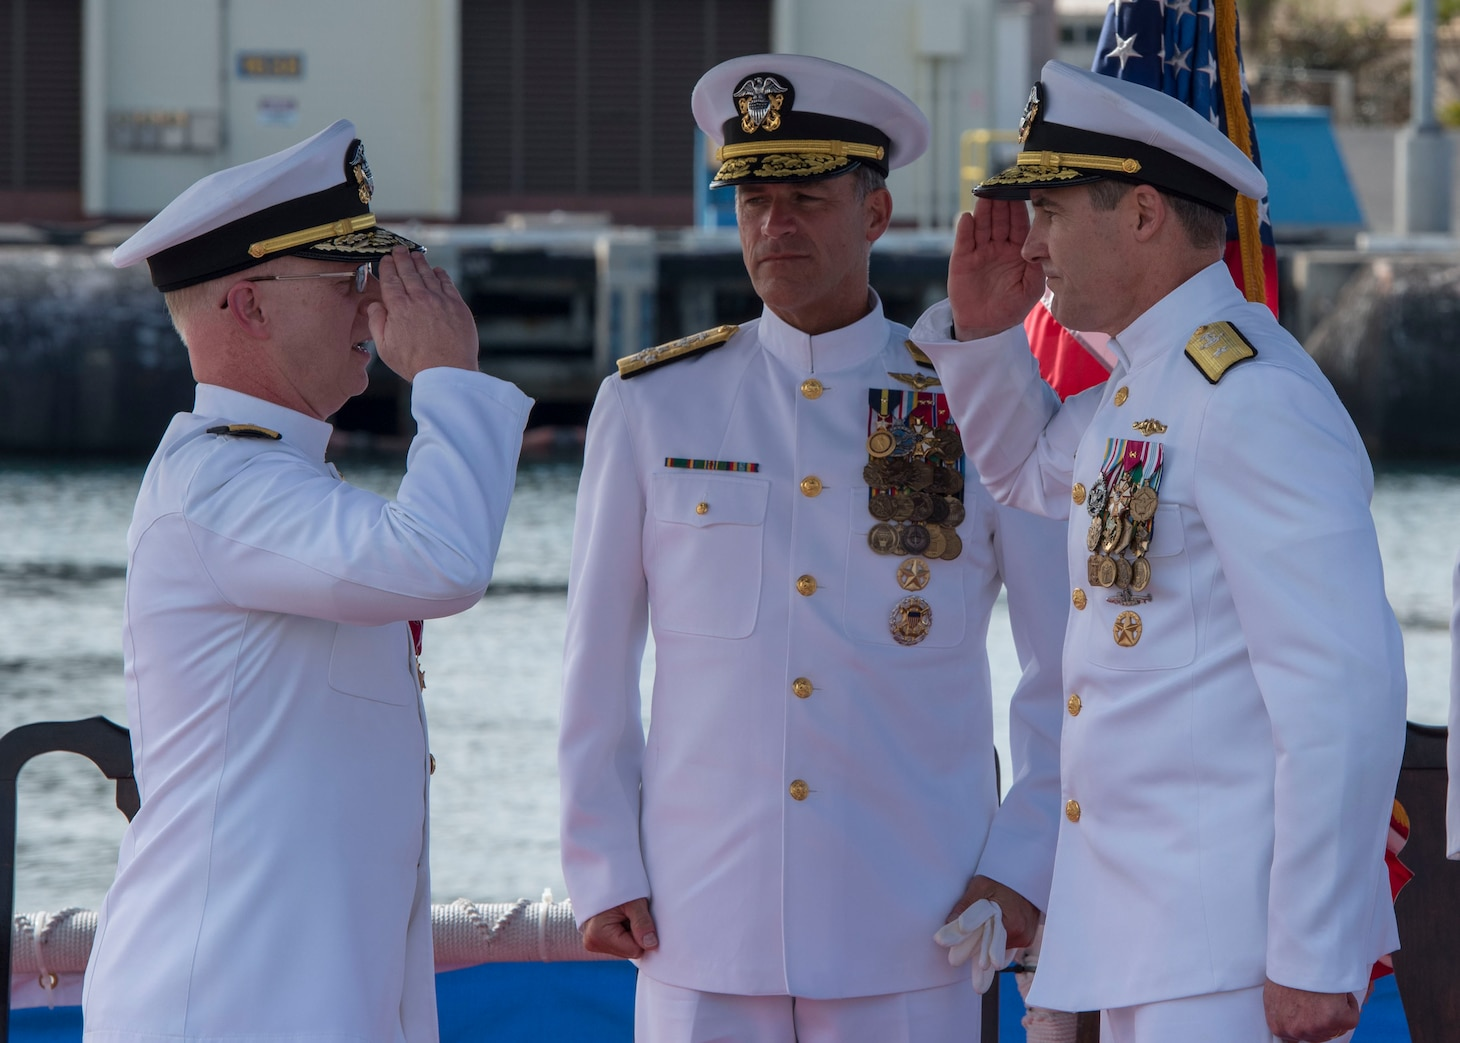 Rear Adm. Blake Converse, right, relieves Rear Adm. Daryl L. Caudle, left, as the commander of Submarine Force, U.S. Pacific Fleet during a change of command ceremony aboard the Virginia-class fast attack submarine USS Mississippi (SSN 782) in Joint Base Pearl Harbor-Hickam. (U.S. Navy photo by Mass Communication Specialist 2nd Class Shaun Griffin/Released)